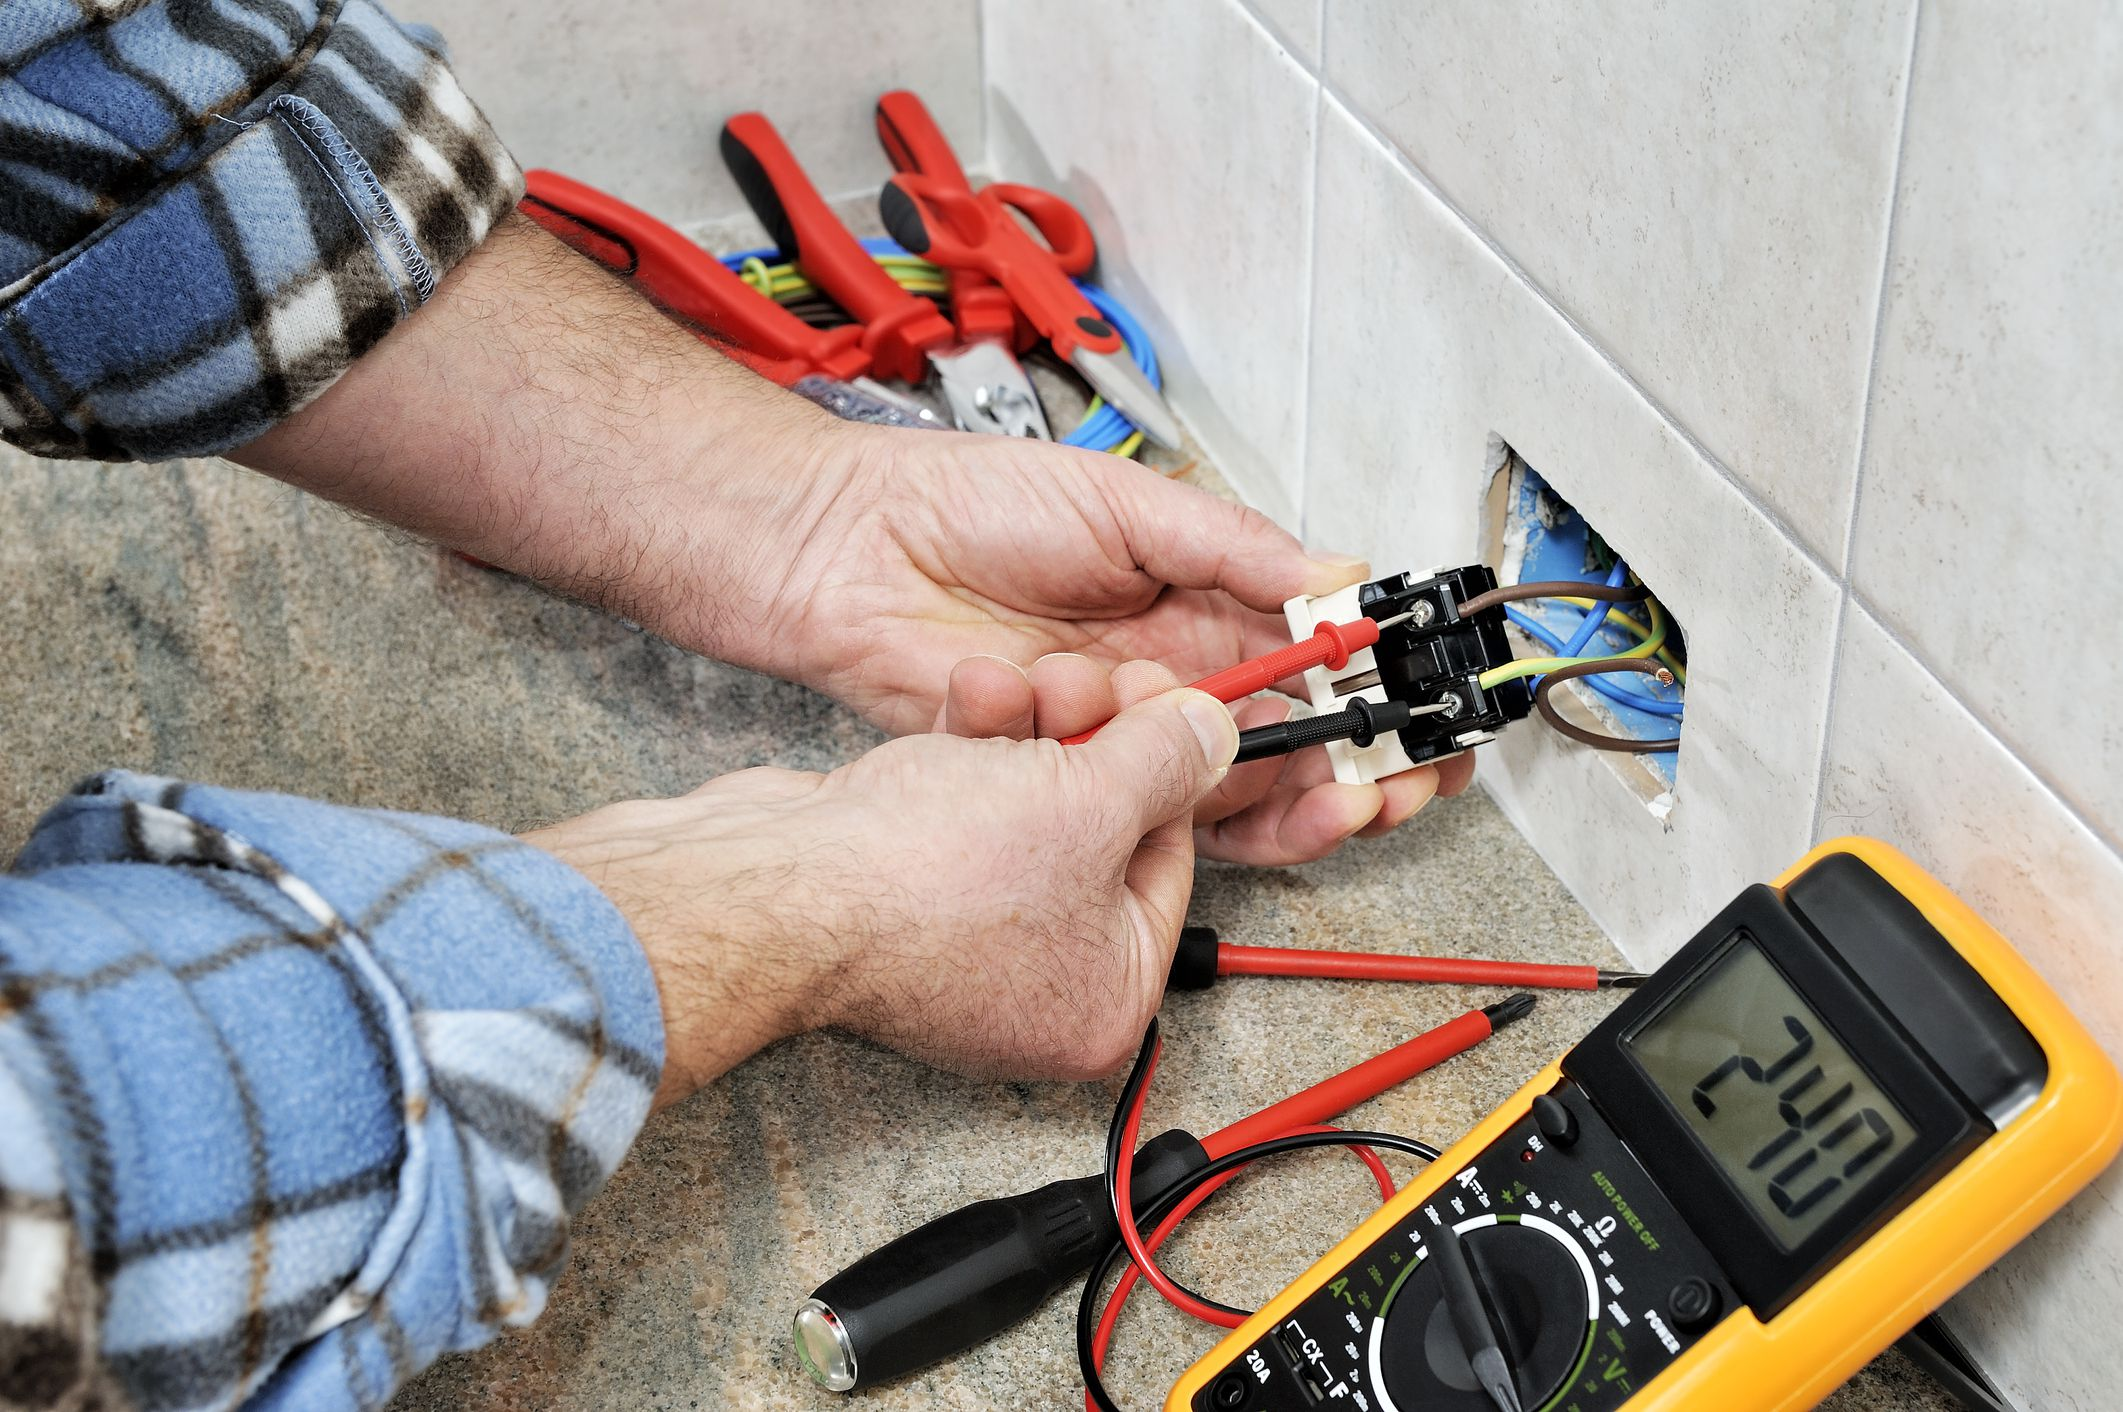 Electrical Testers And Their Uses Ideal Circuit Breaker Finder The Multitool Of Work